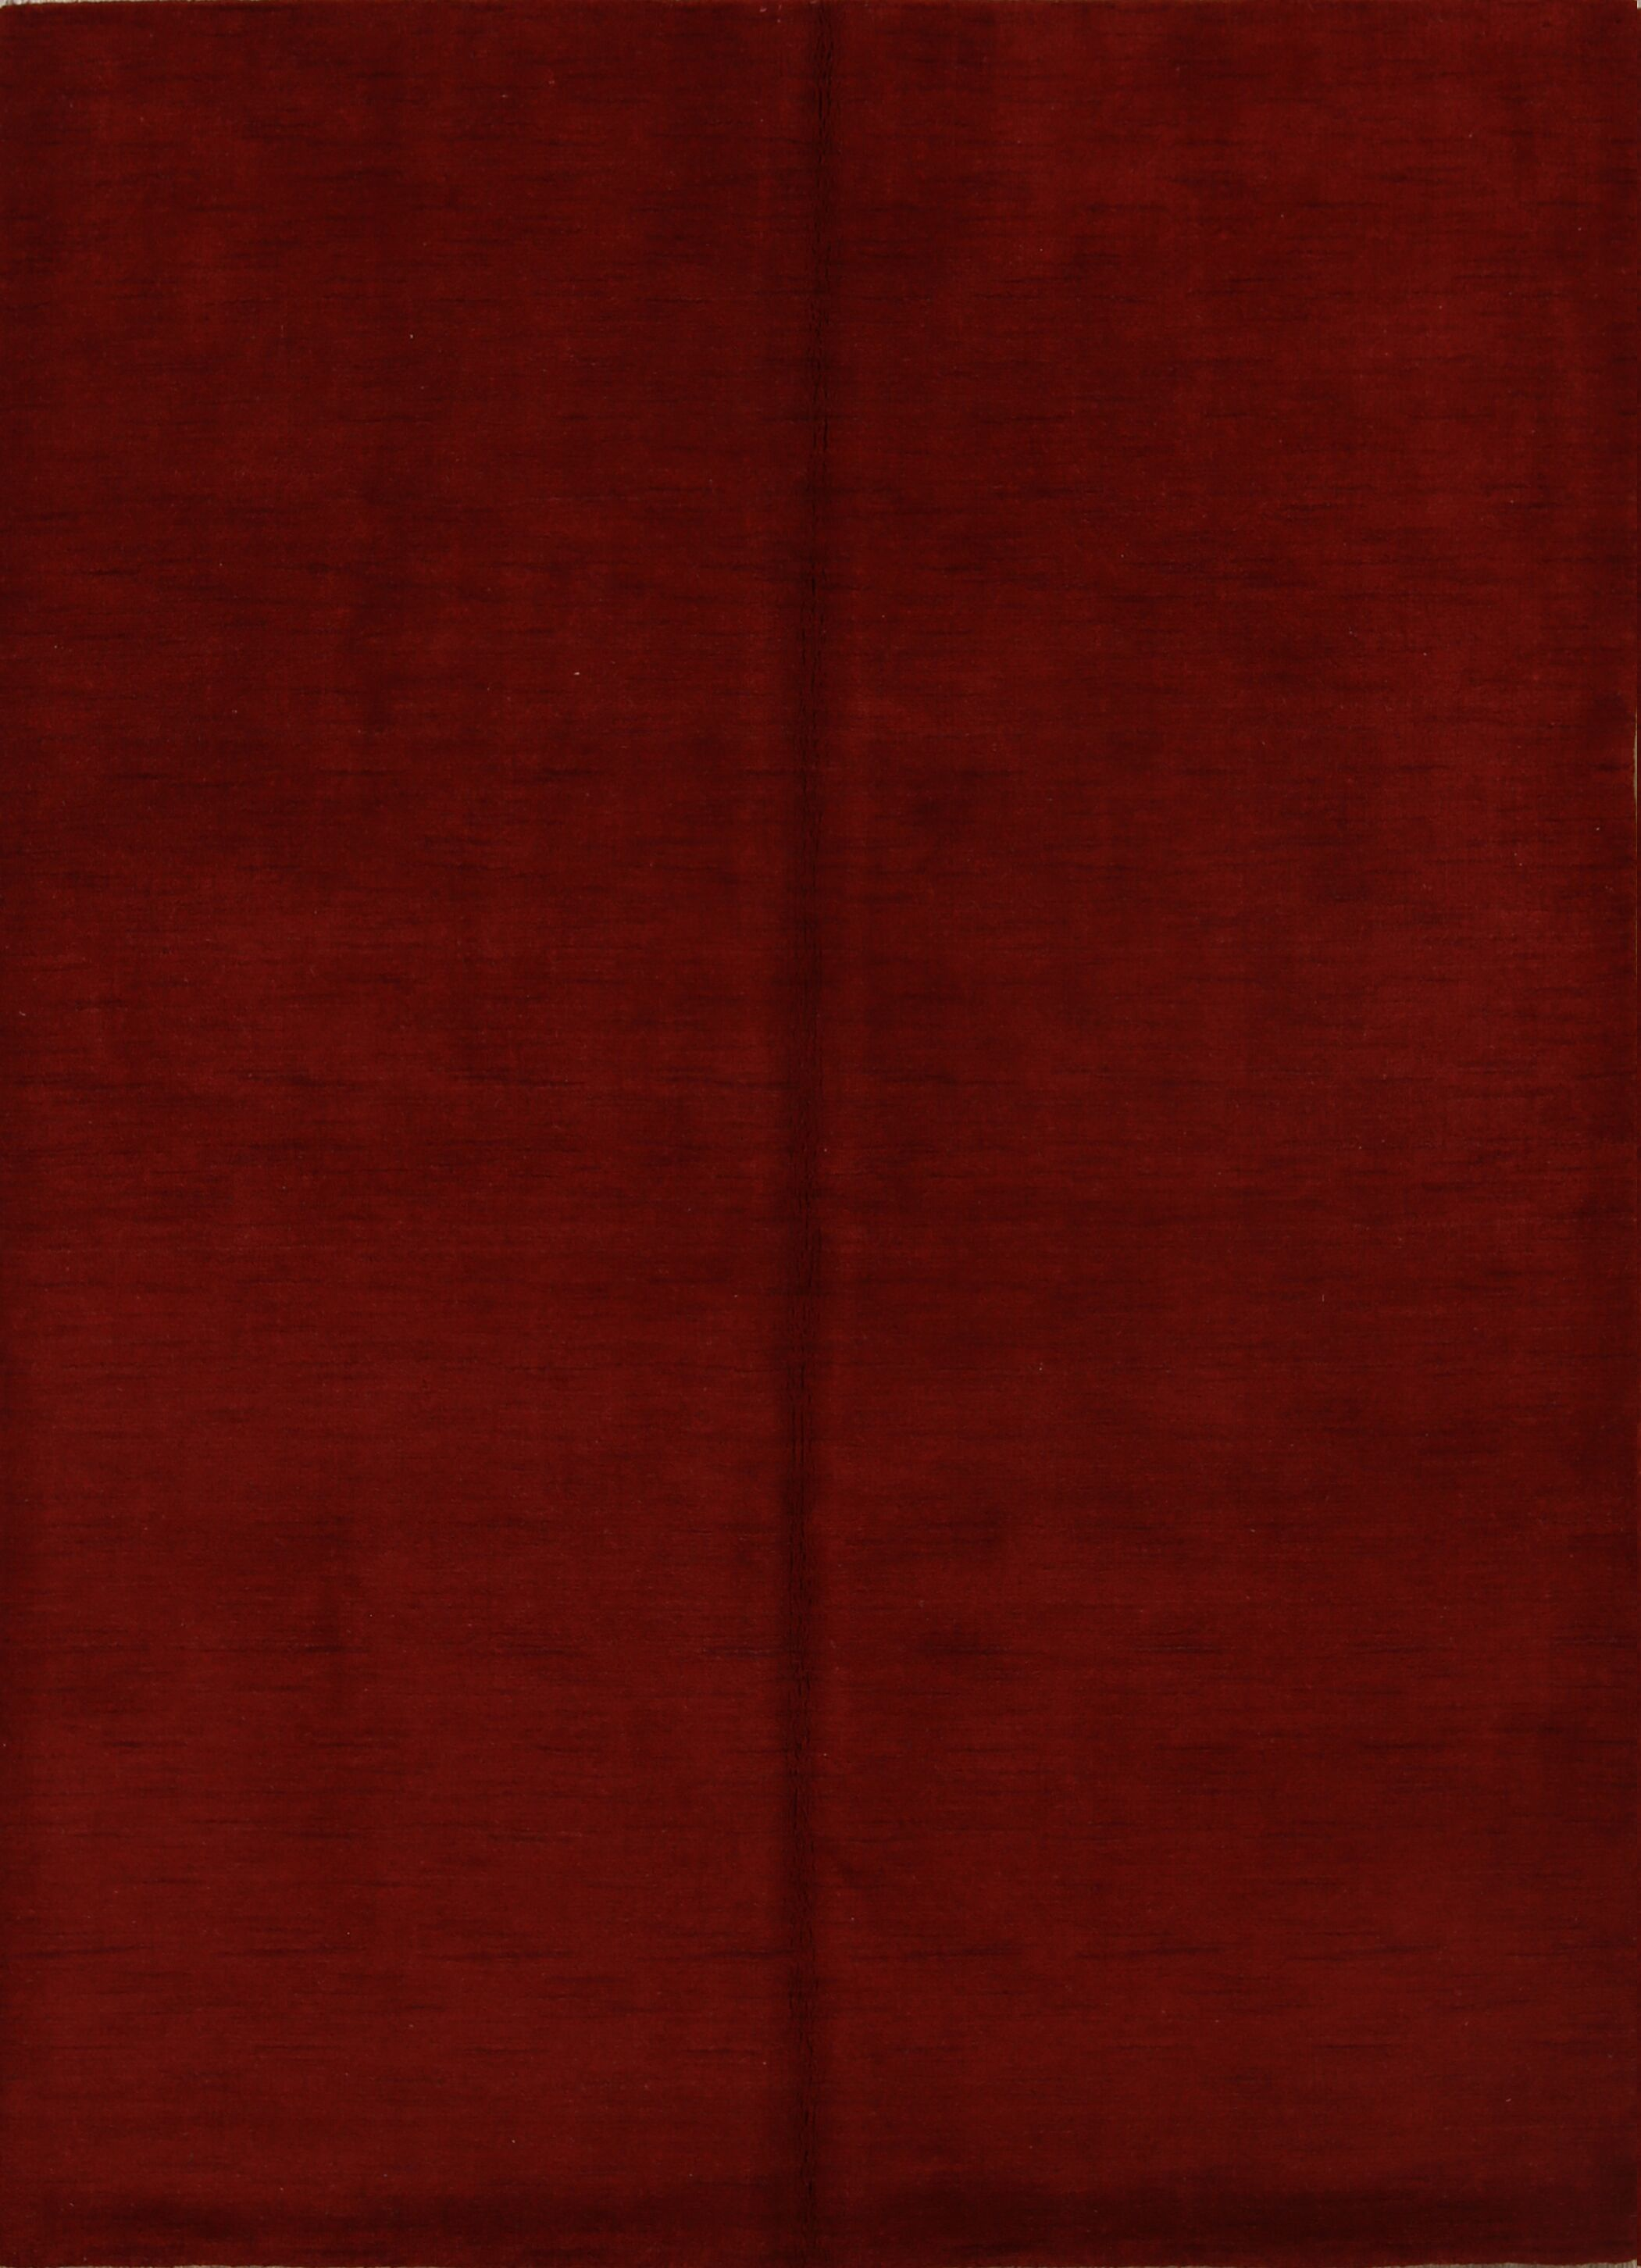 Fortune Indian Oriental Hand-Woven Wool Red/Brown Area Rug